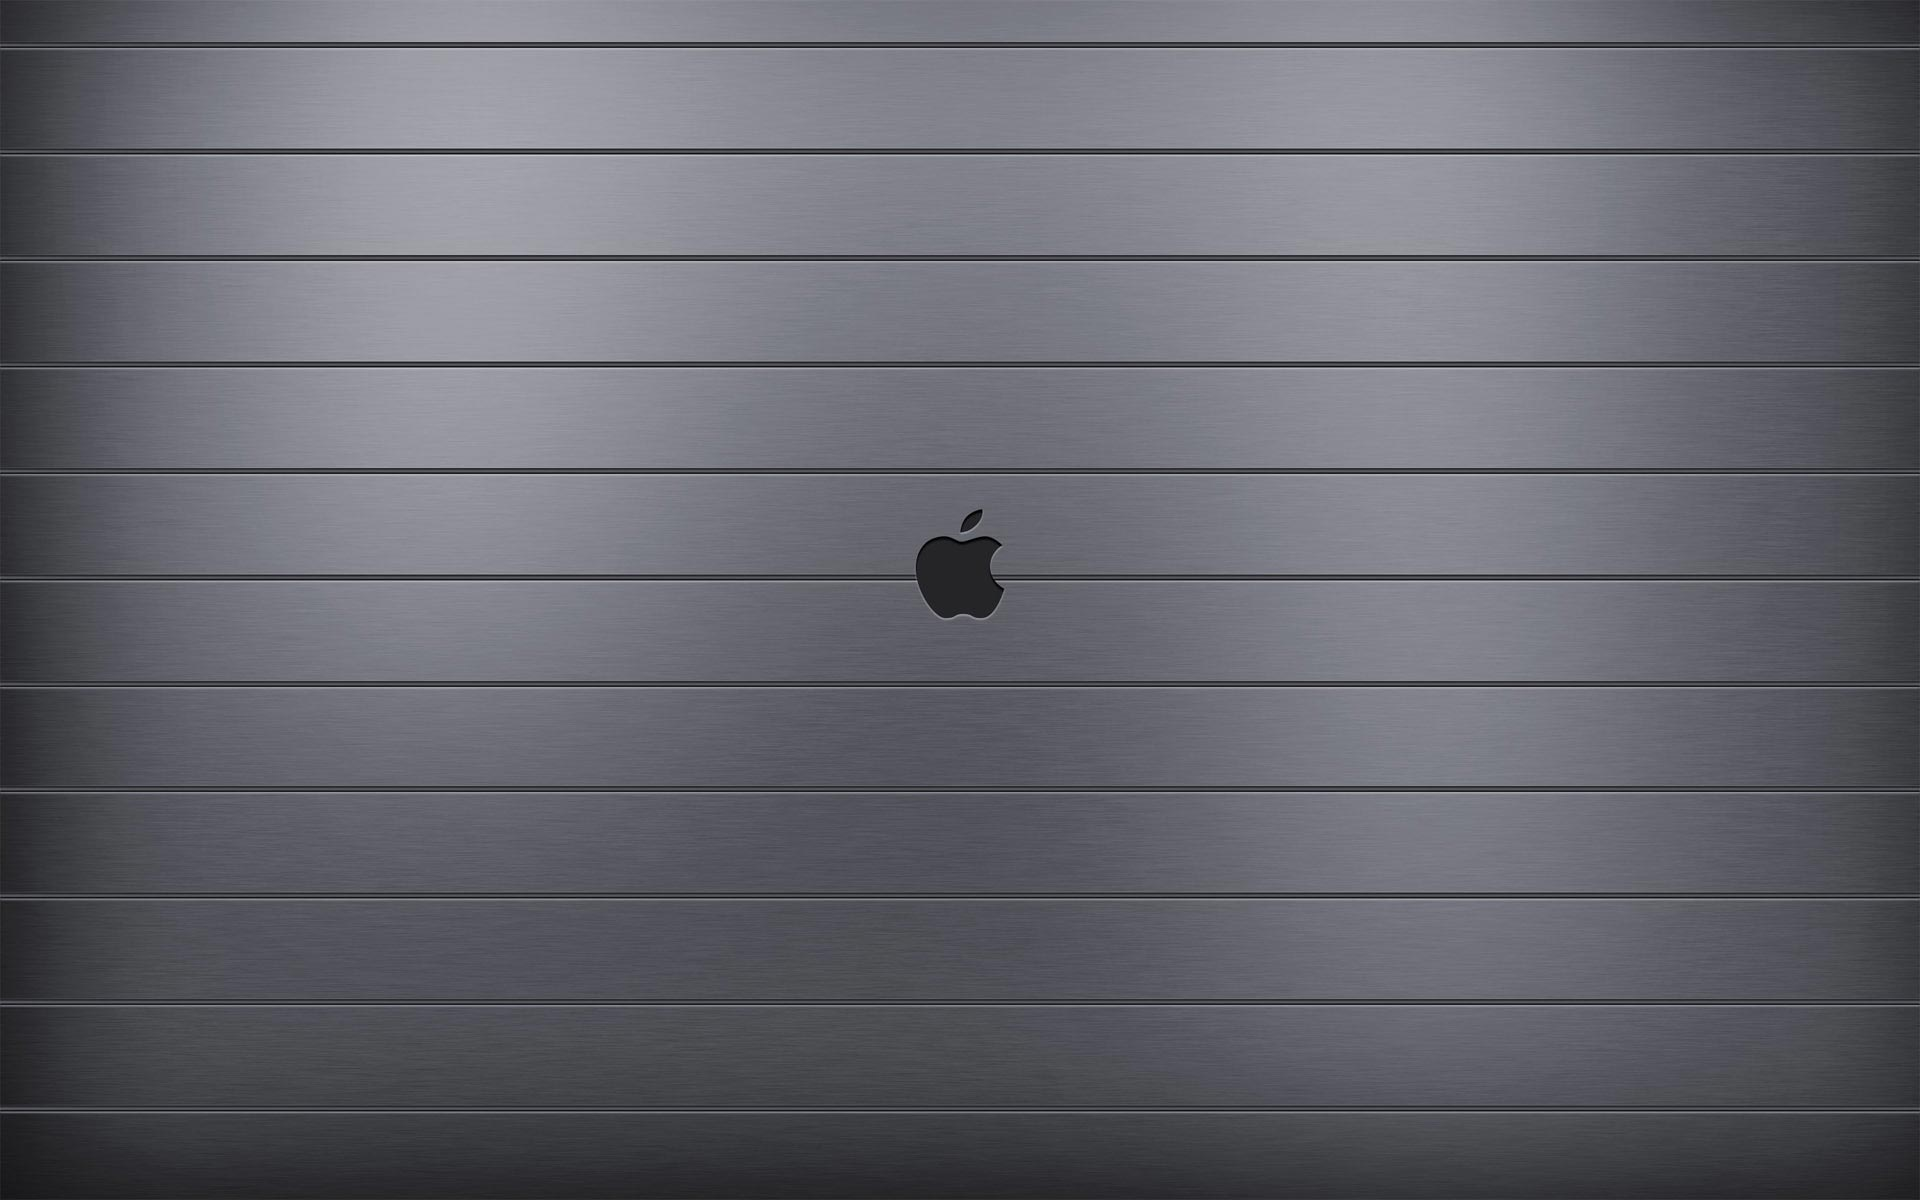 apple logo dark wallpaper [1920x1200]